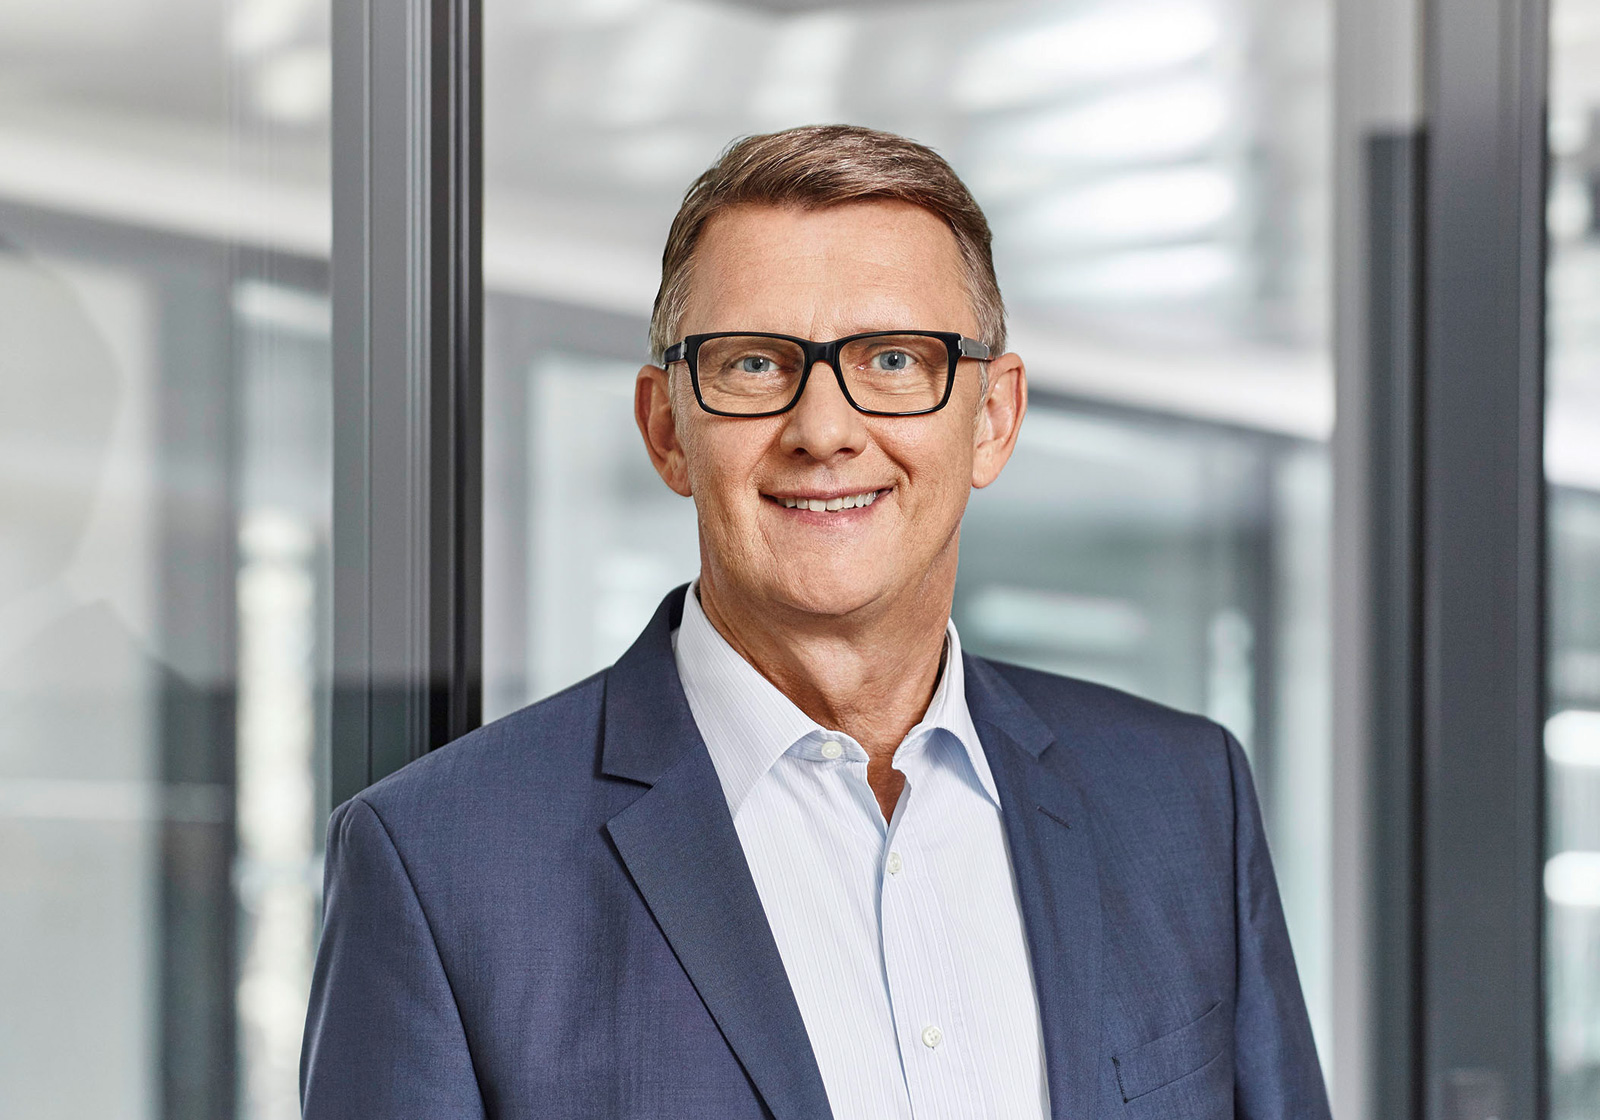 Uwe Schäfer, Managing Director of REDSERVE Frankfurt. Photo: ATP/Becker